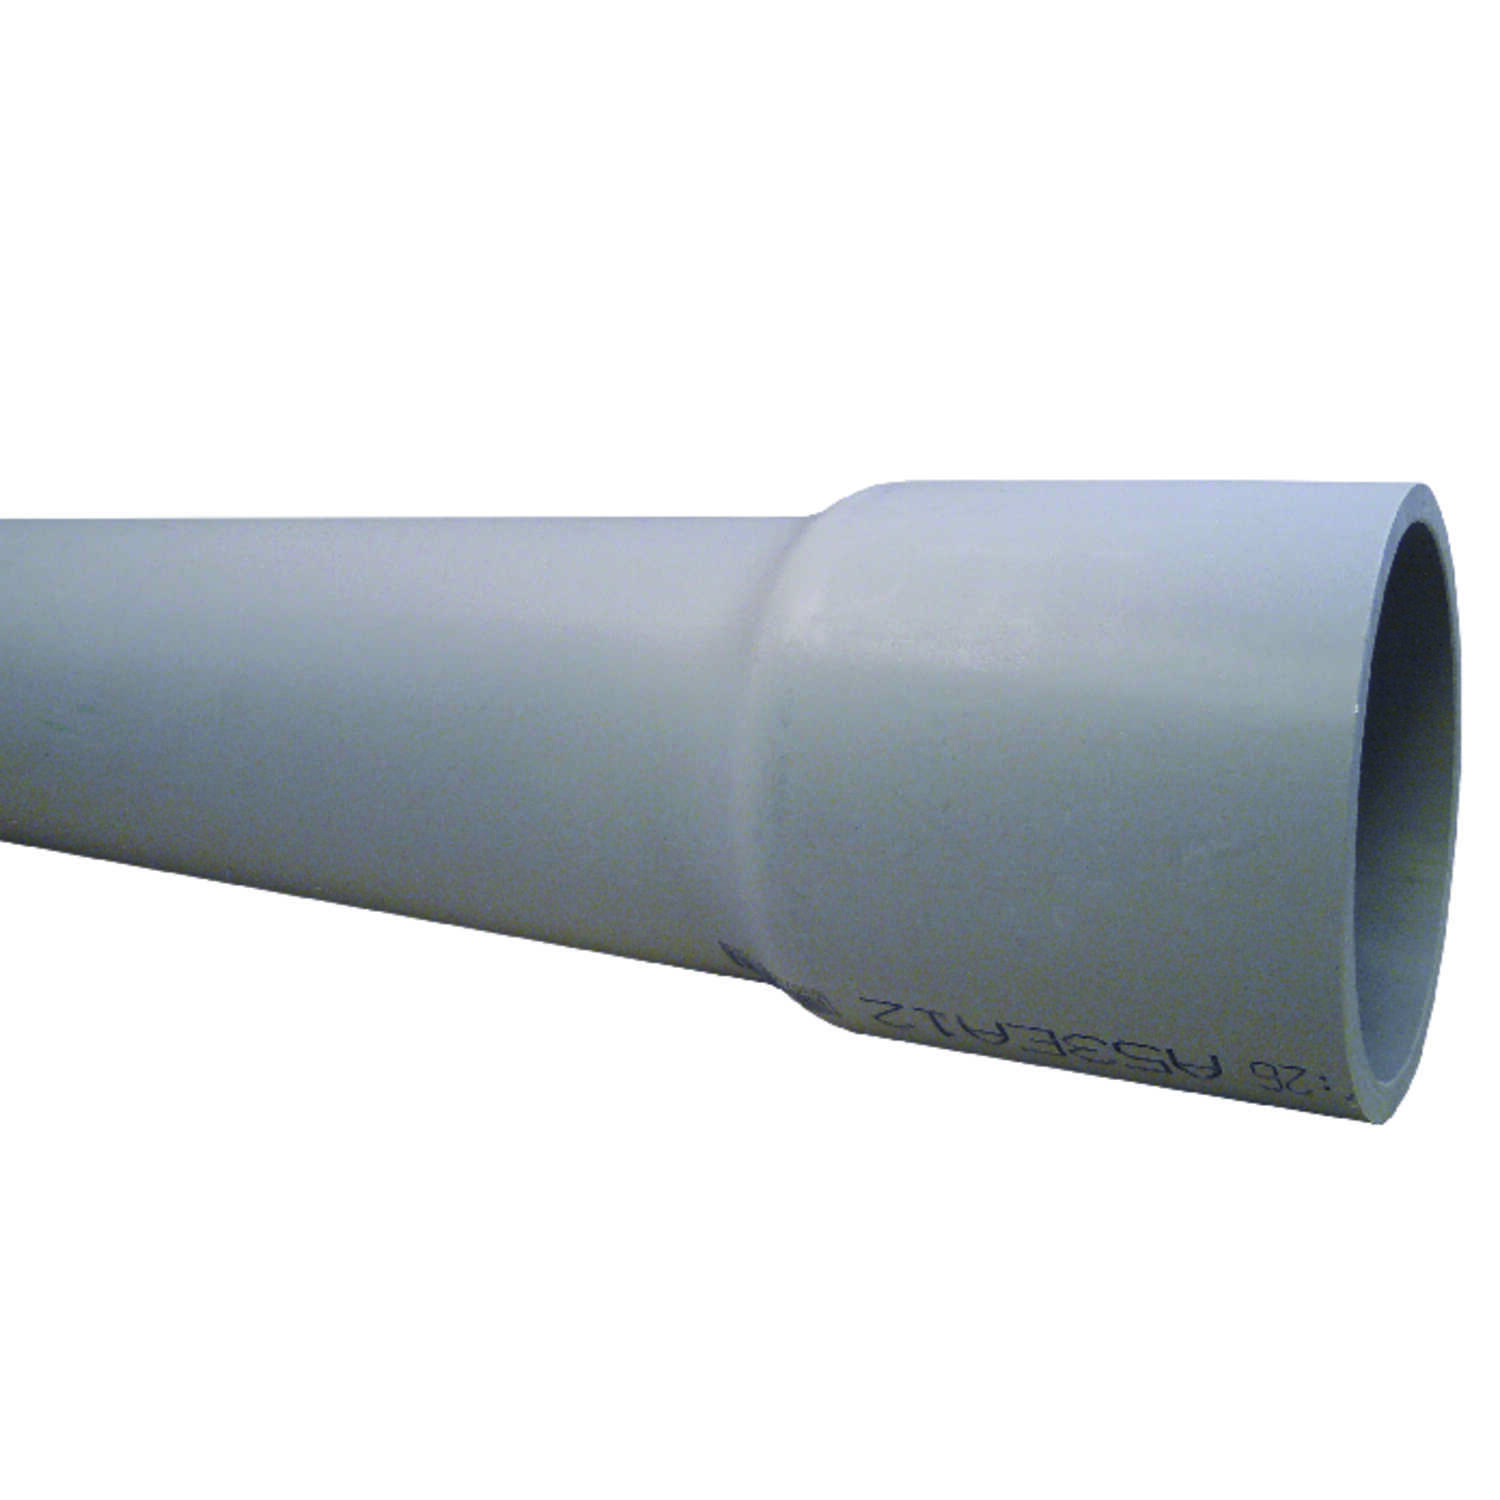 Cantex  2 in. Dia. x 10 ft. L PVC  For Rigid Electrical Conduit